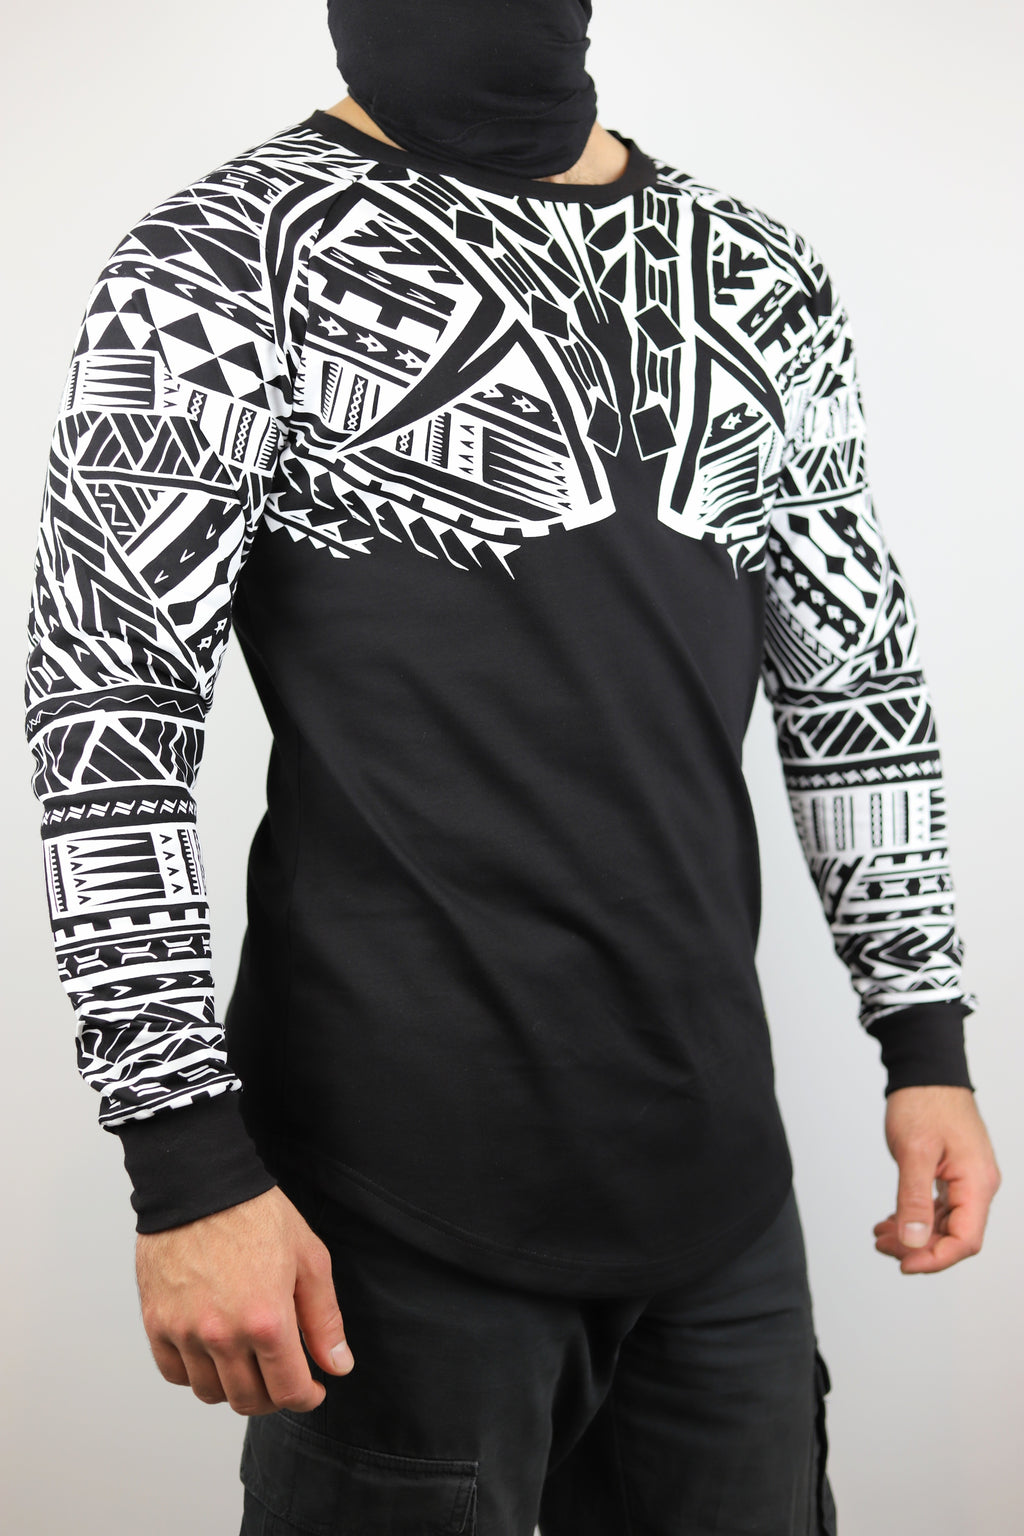 Heavyweight Premium Unisex BLACK Long Sleeve